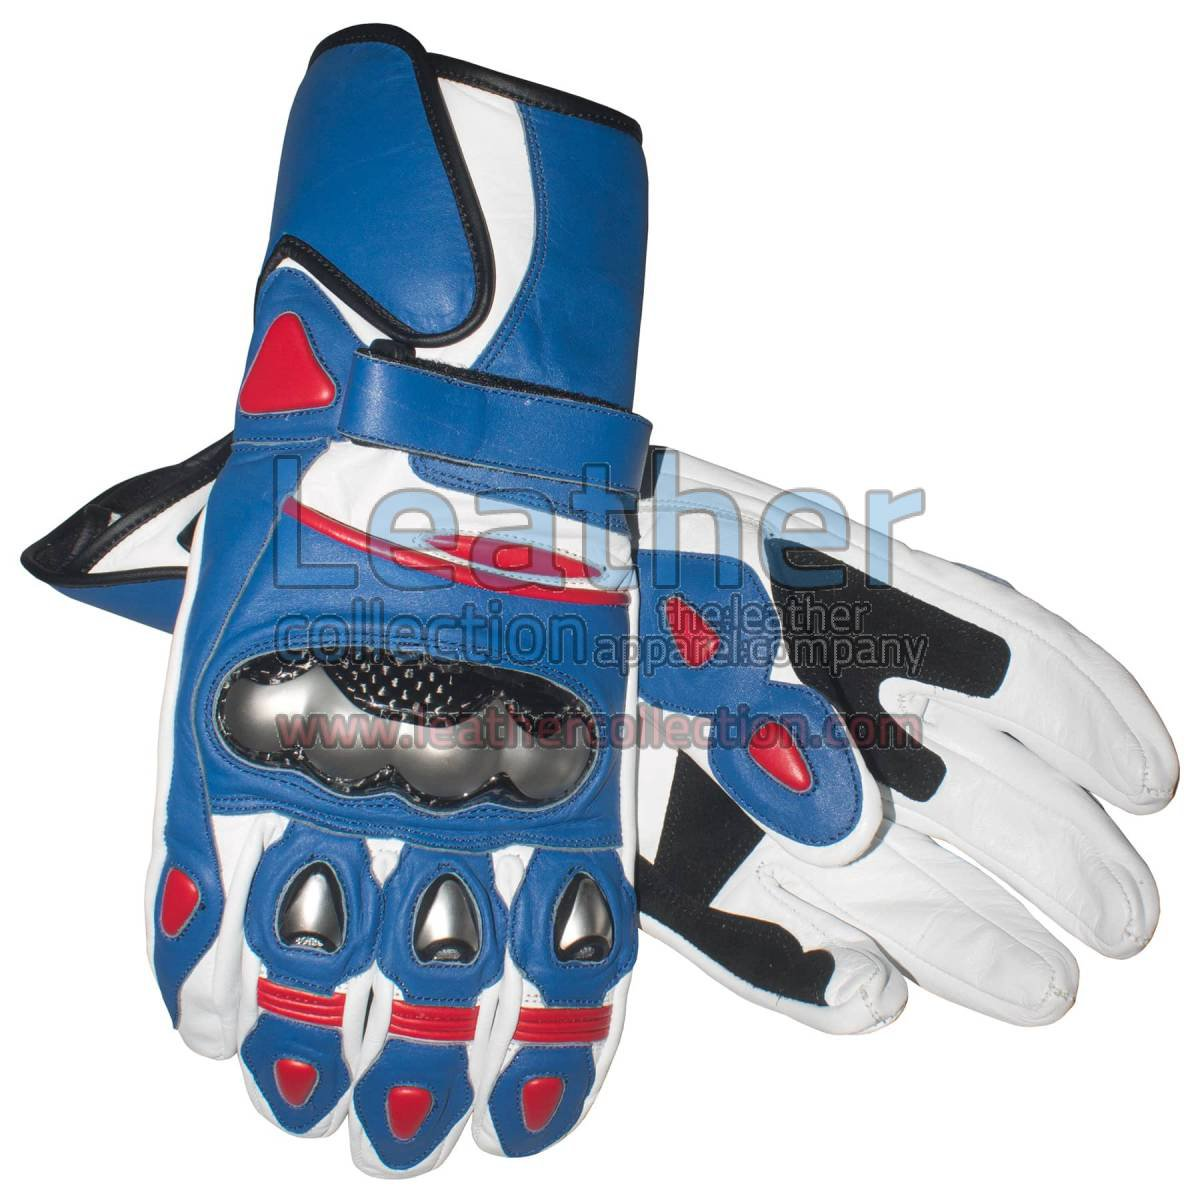 Rhino Rider Gloves